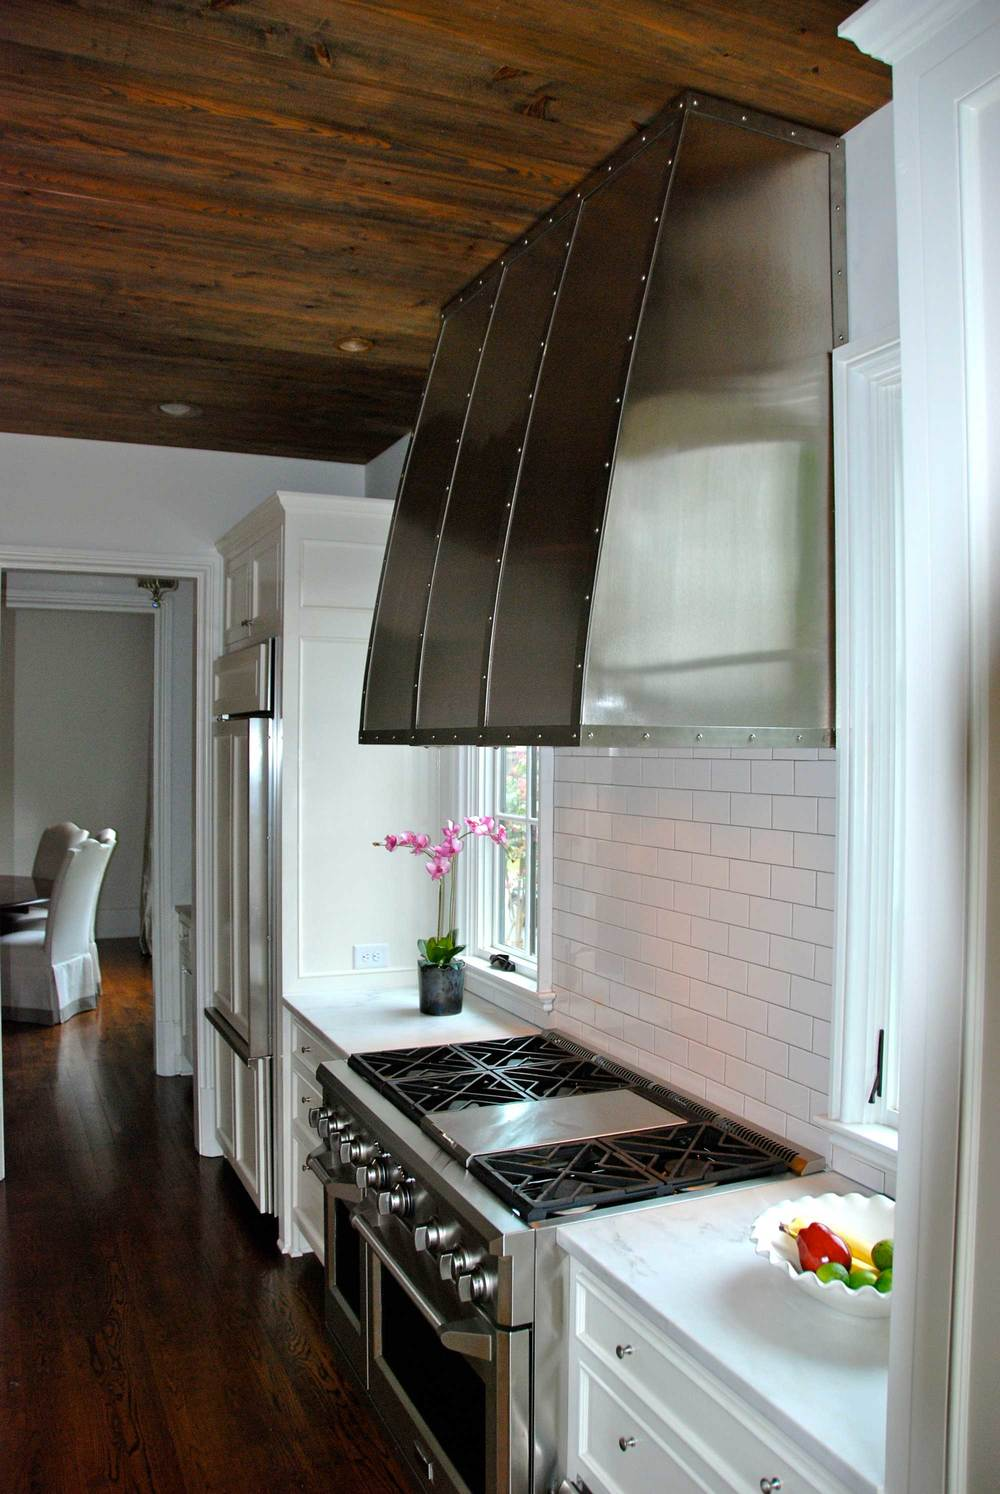 Alabama. Stainless hood. (1 of 3)